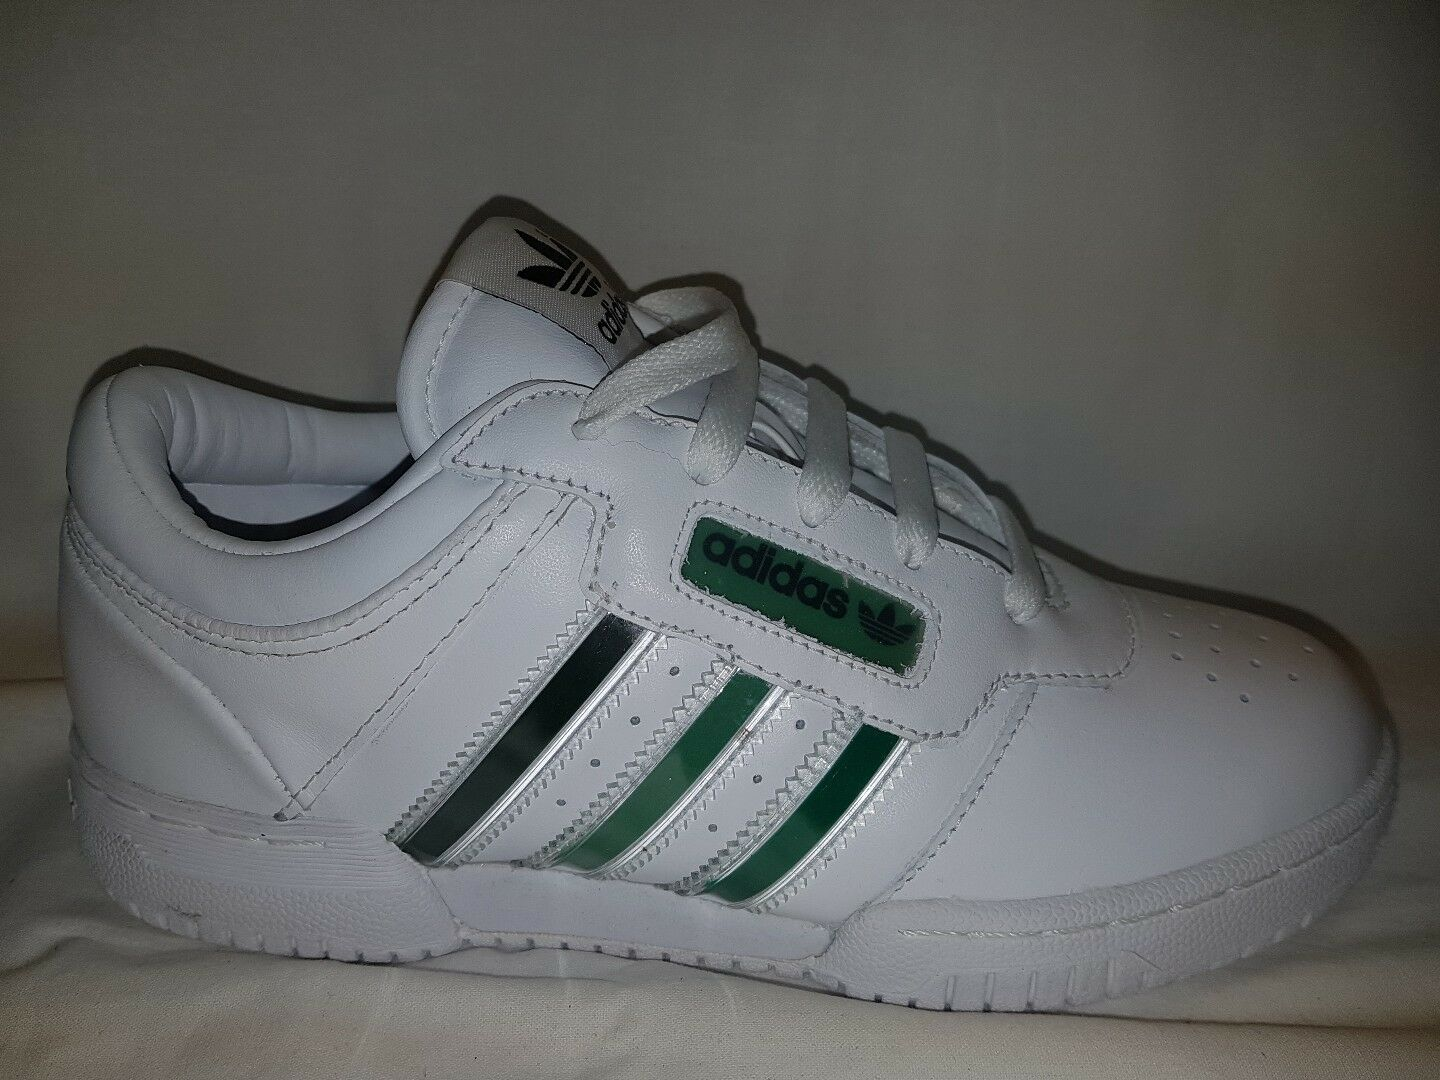 Damenschuhe Damenschuhe Damenschuhe LADIES GIRLS ADIDAS POWER PHASE TRAINERS  UK 4 d57d38